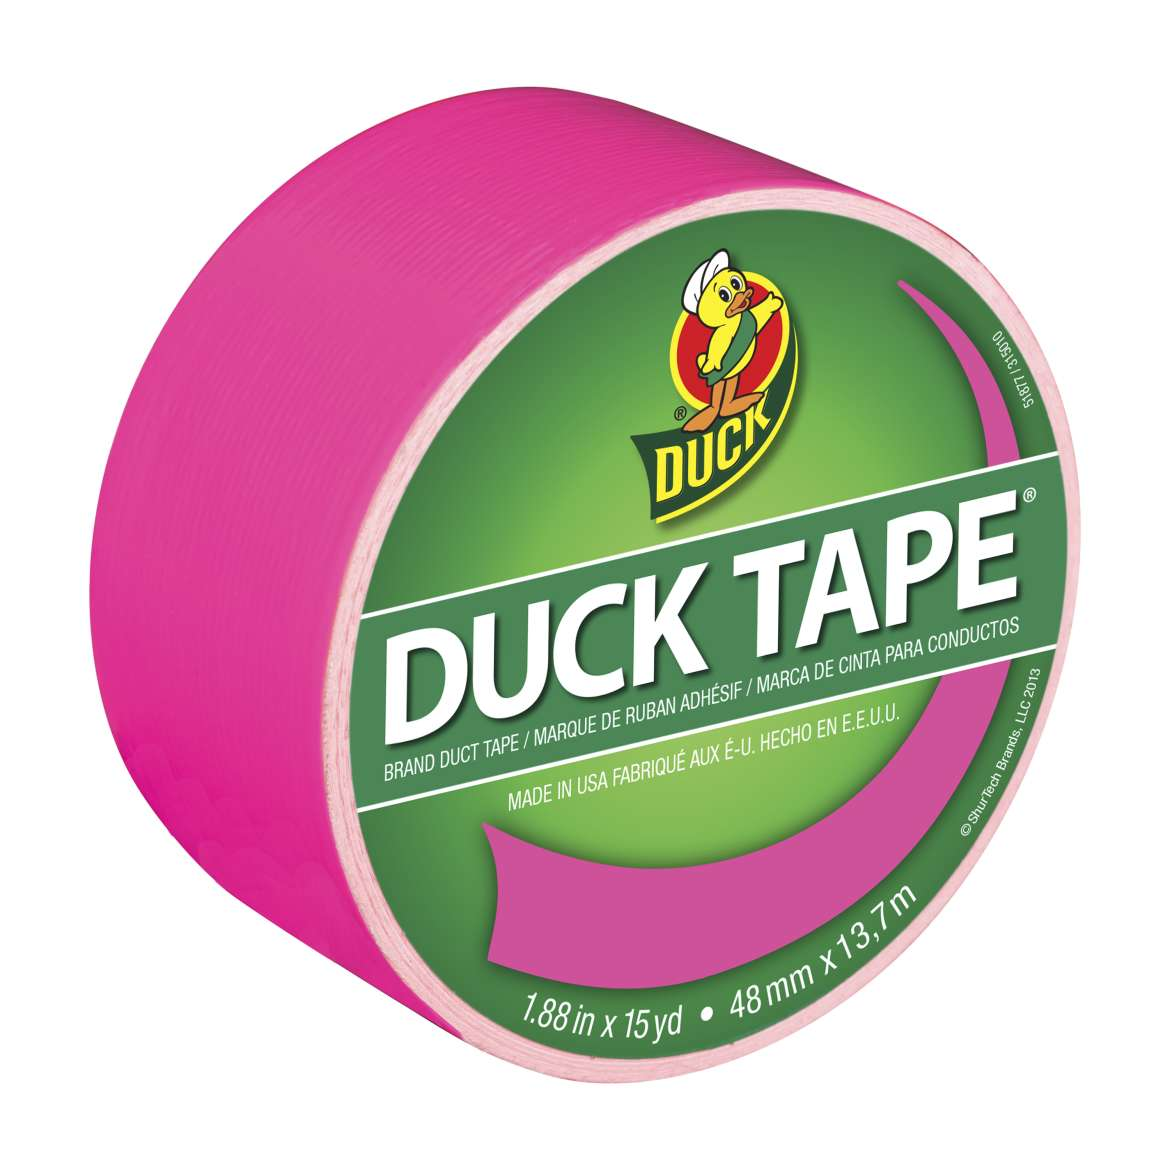 Color Duck Tape Brand Duct Tape - Neon Pink, 1.88 in. x 15 yd.